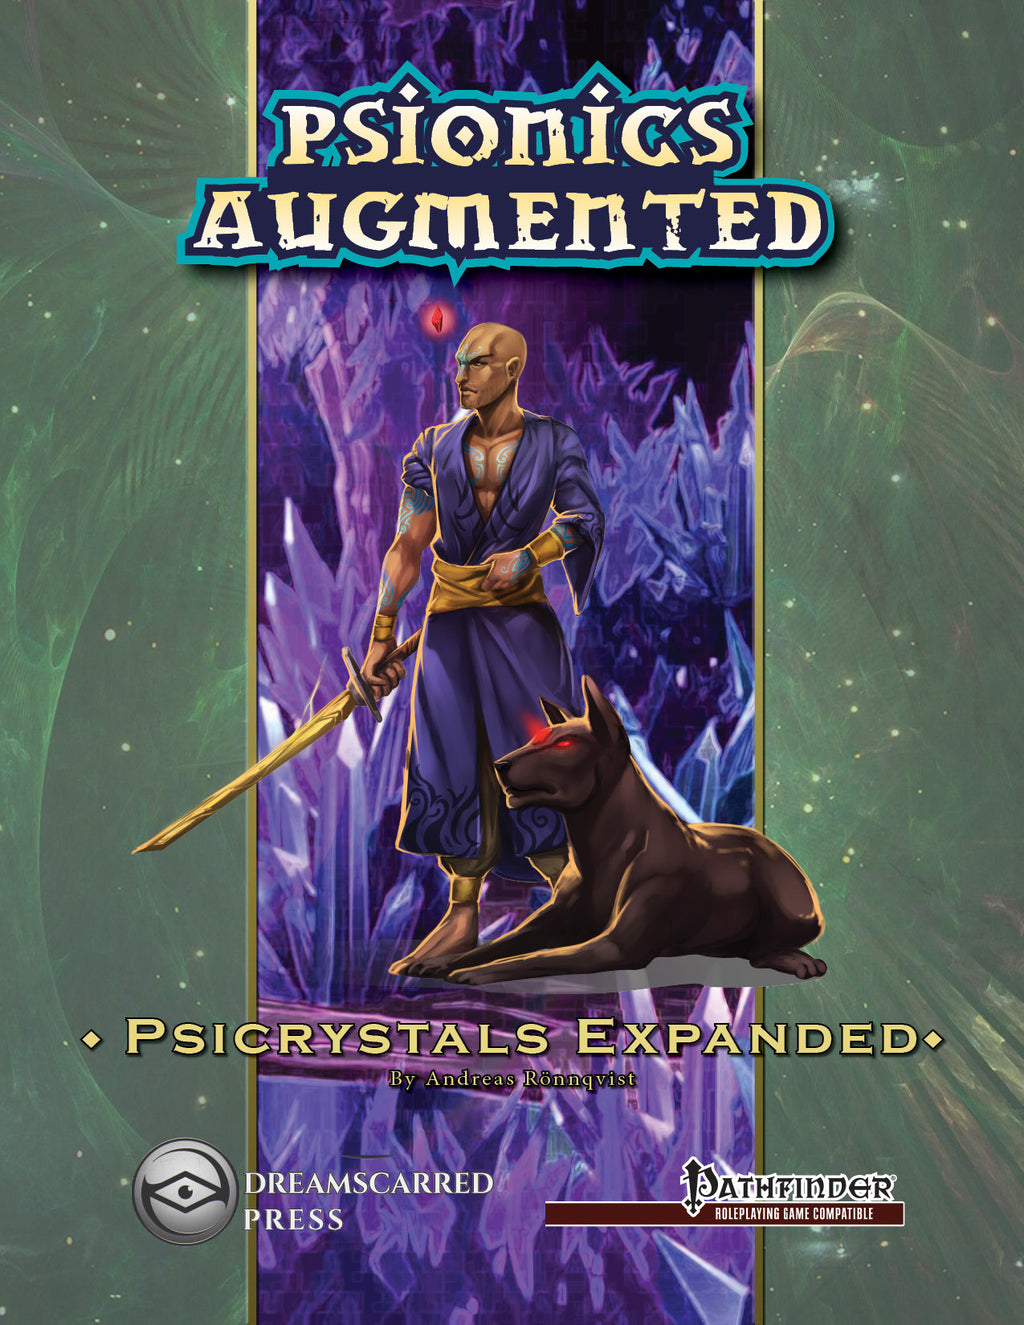 Psionics Augmented: Psicrystals Expanded